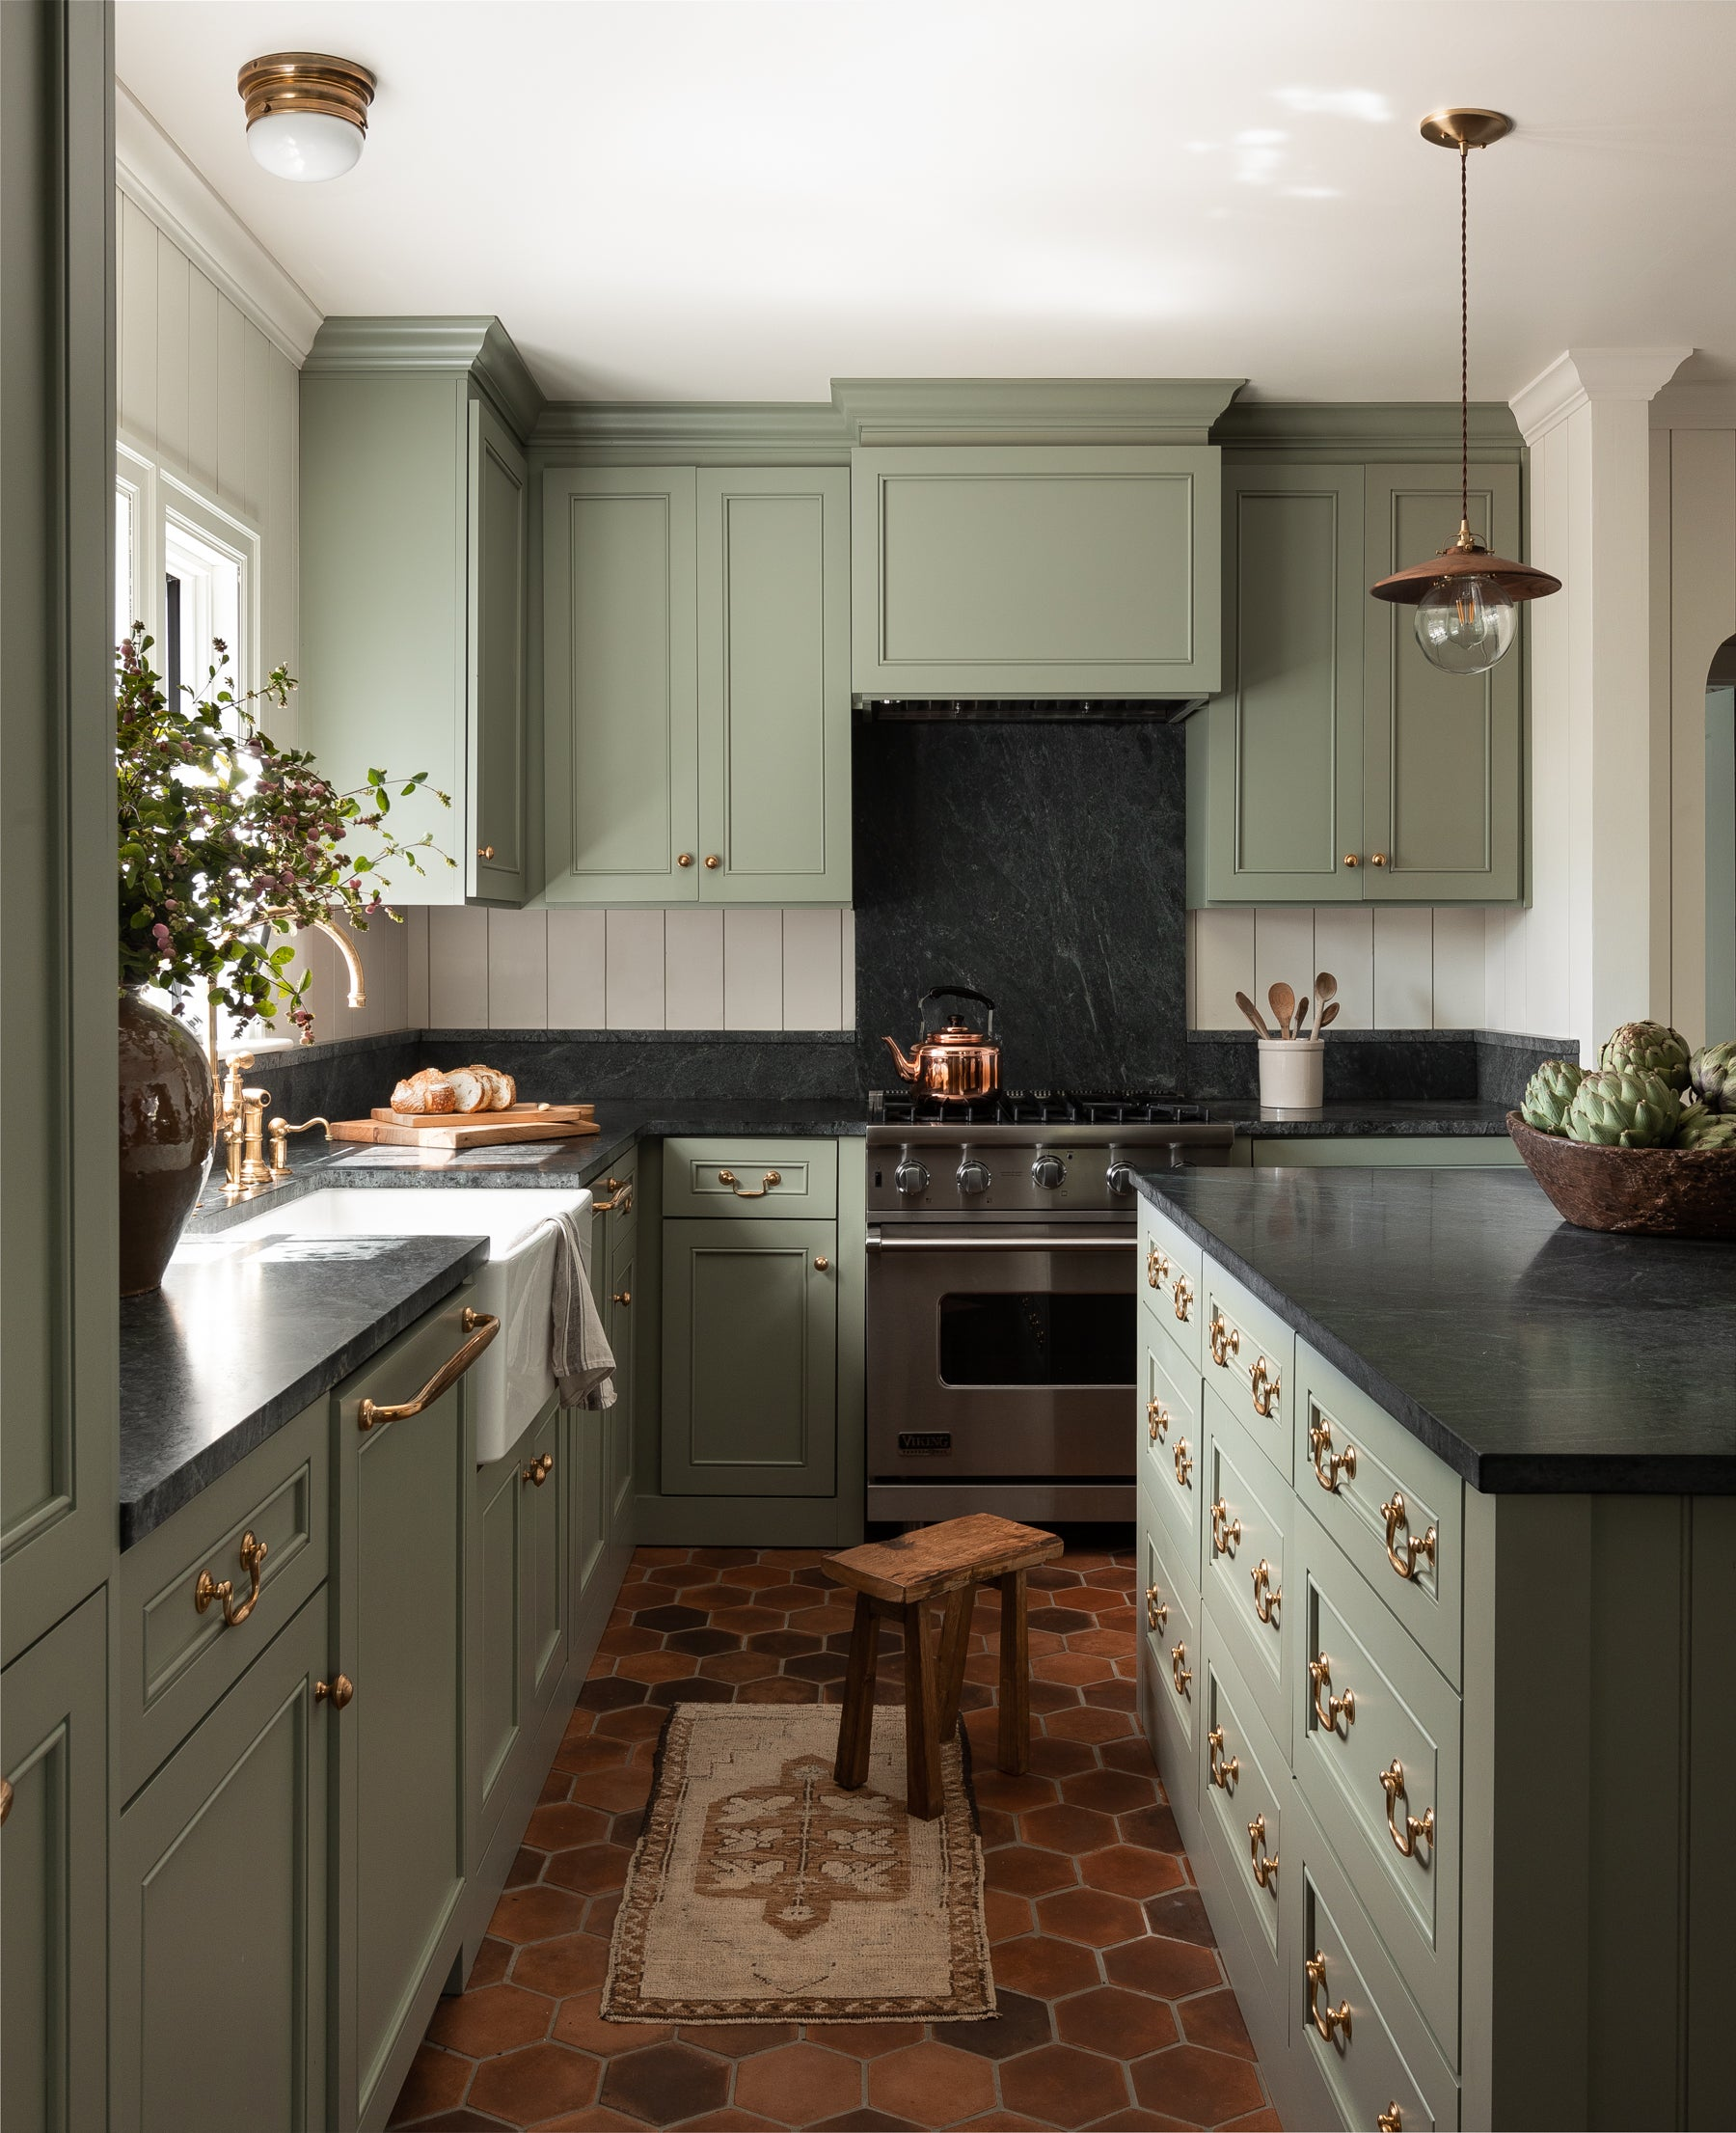 Why We Disagree With The Average Height Of A Kitchen